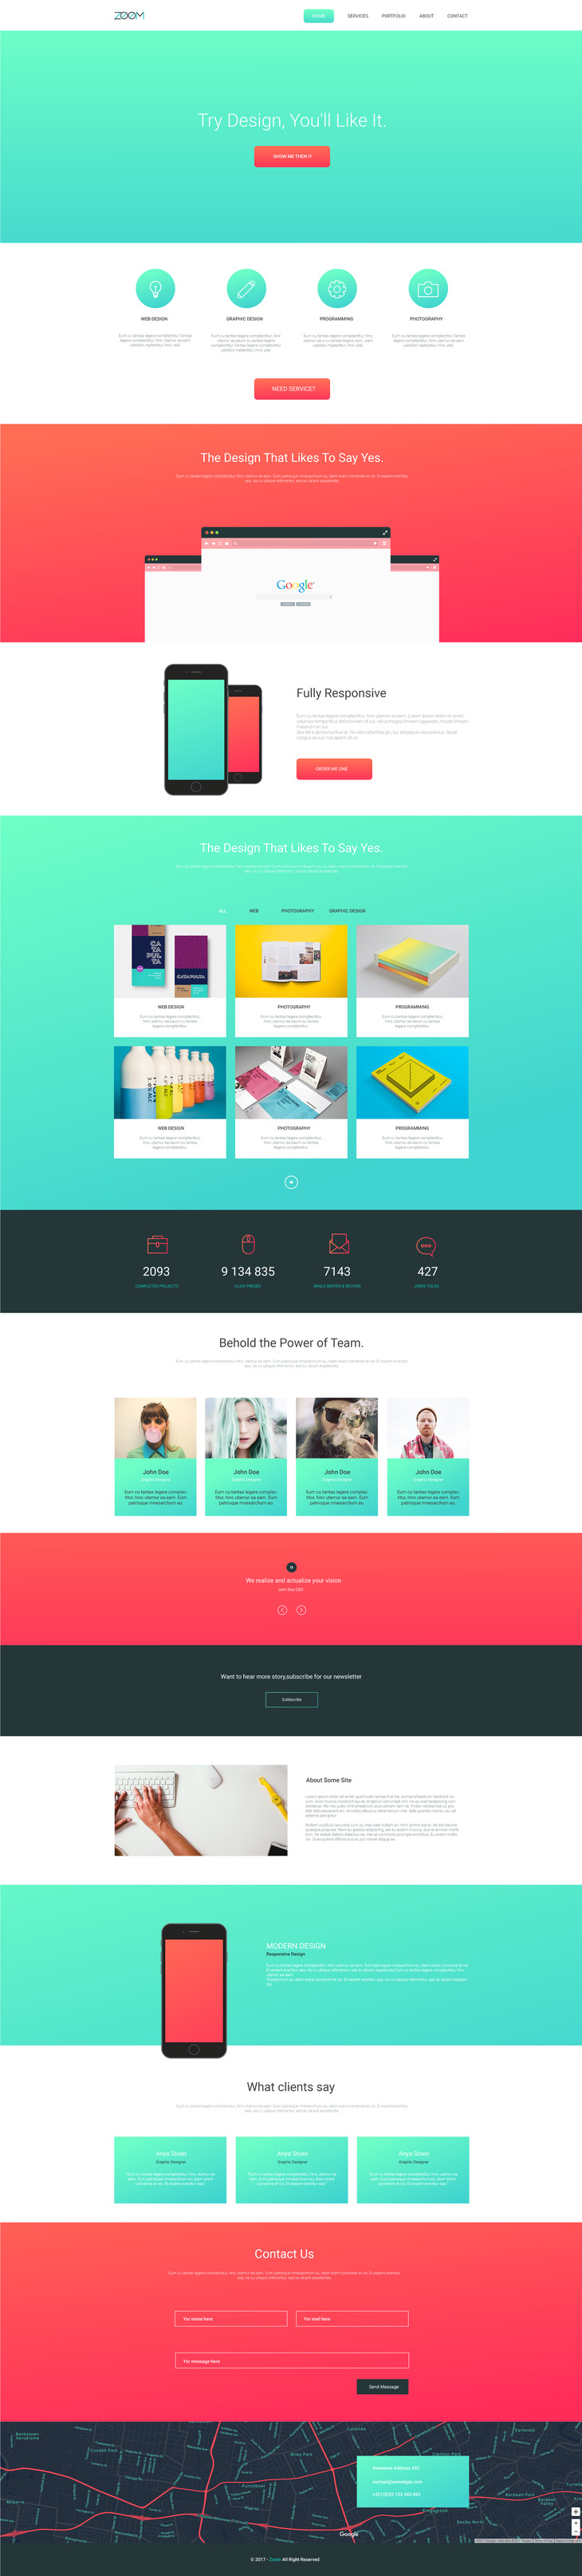 Zoom - Single Page Template | Free PSD